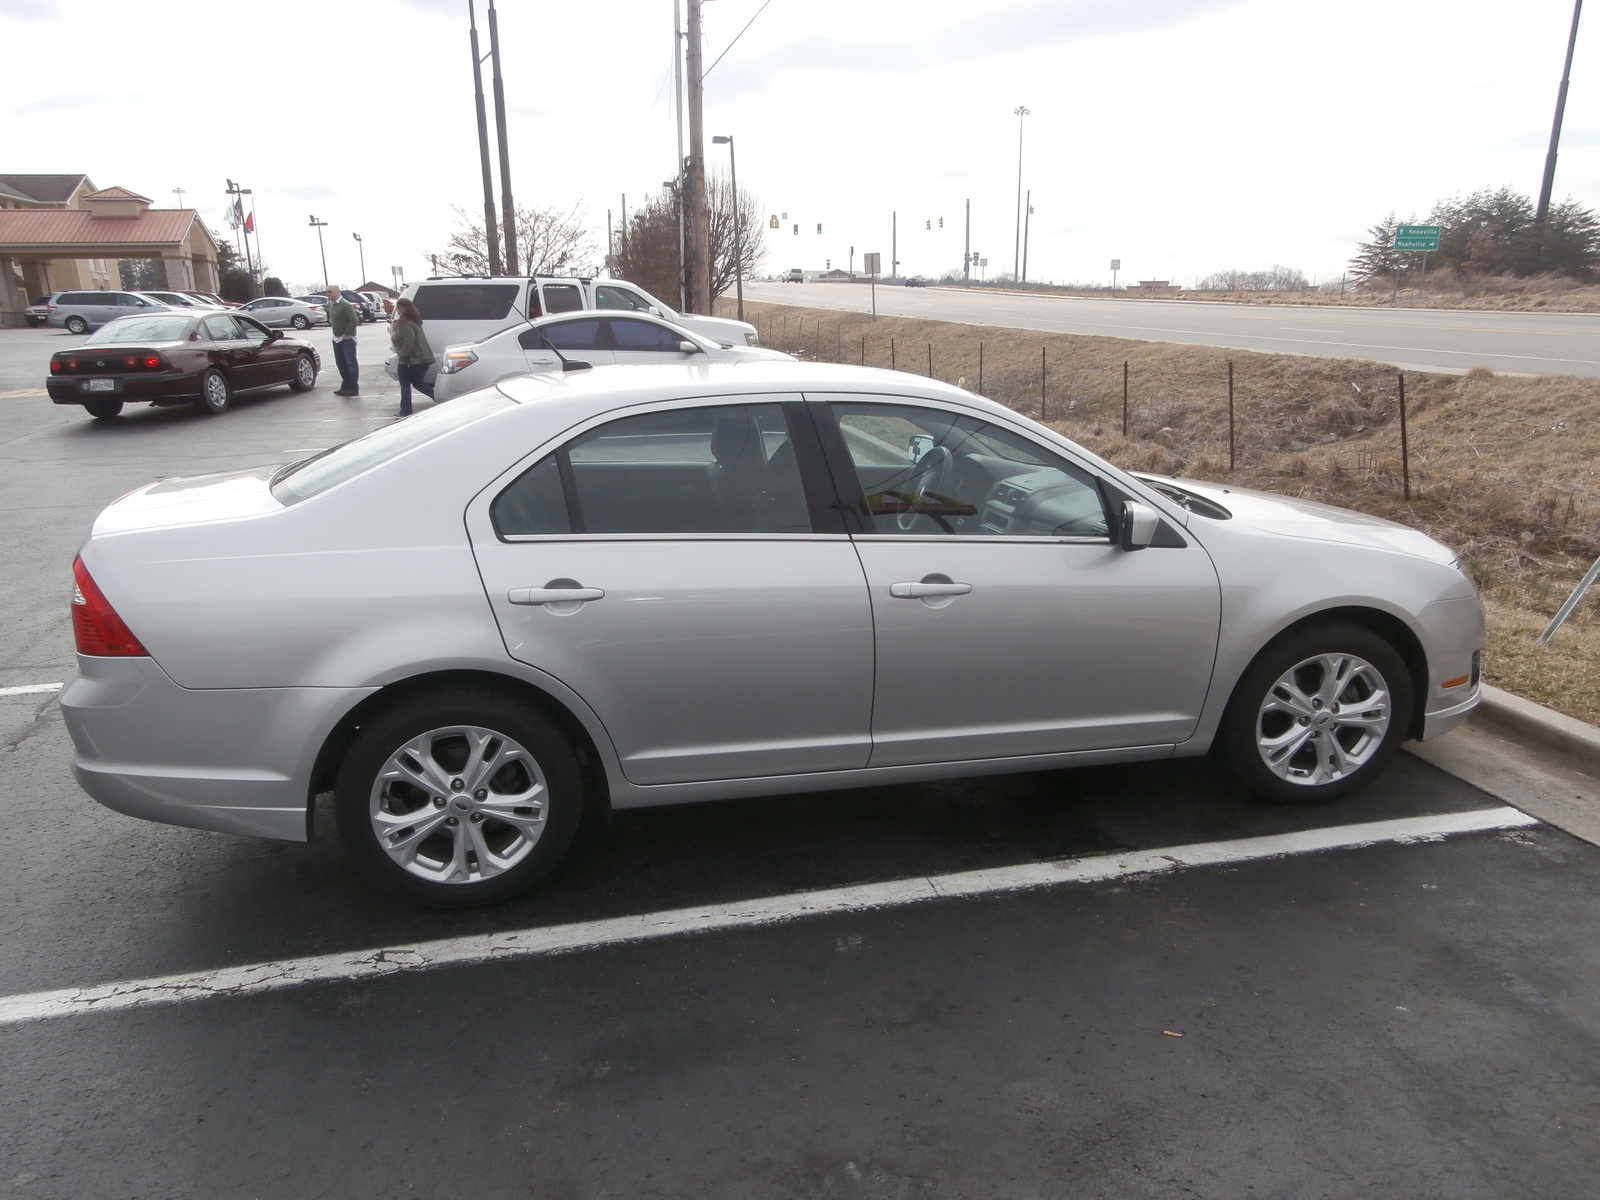 2012 Ford Fusion SE also 2010 Ford Fusion Hybrid likewise 2012 Ford Fusion SE furthermore 2012 Ford Fusion SE moreover 2012 Ford Fusion SE. on 2012 ford fusion